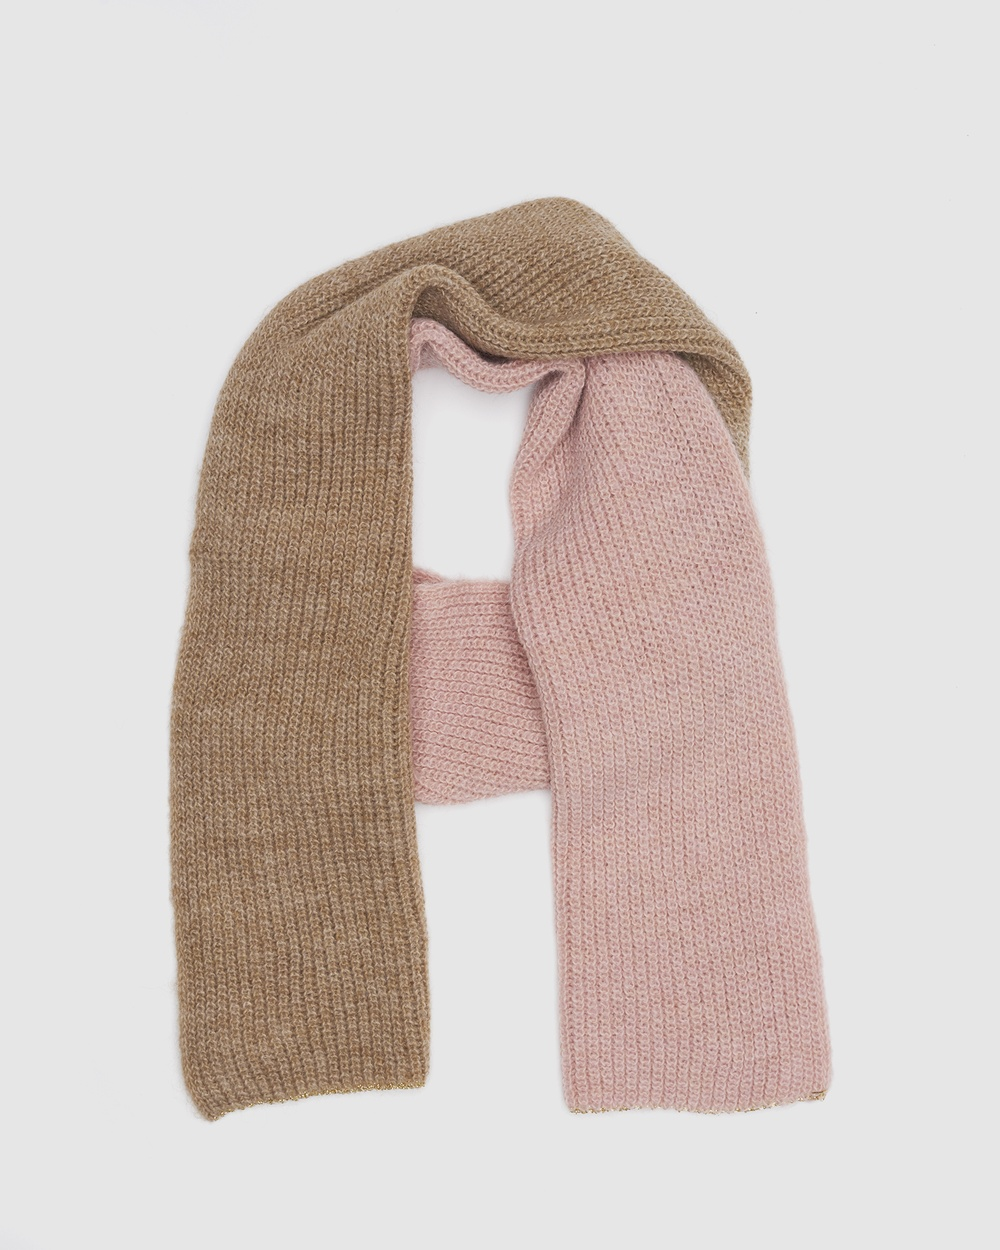 Kate & Confusion Livigno Scarf Scarves Gloves Pink